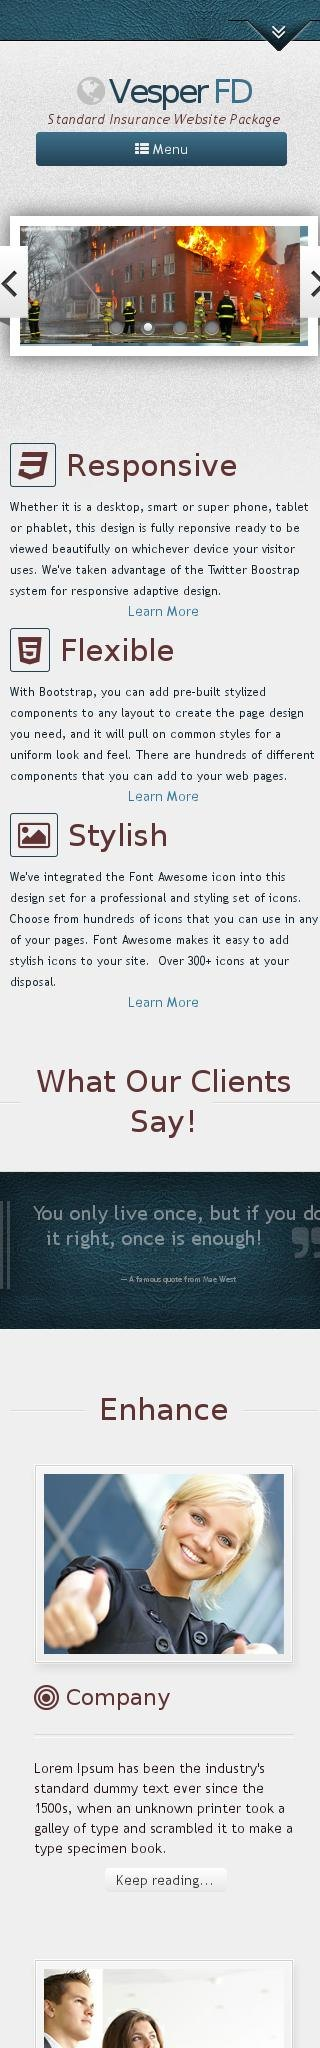 Mobile: Insurance Web Template